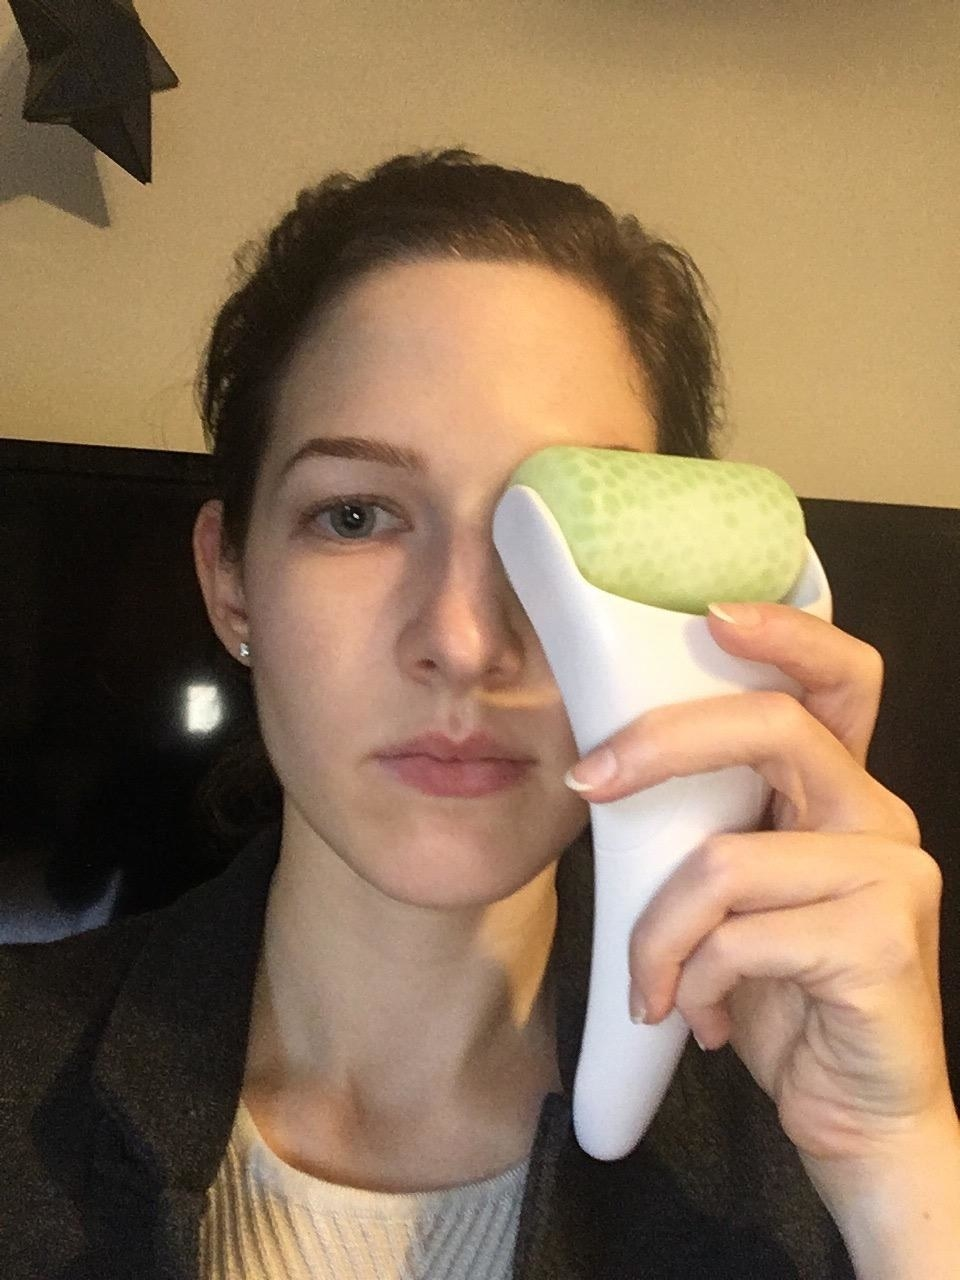 A reviewer using the roller on their eye